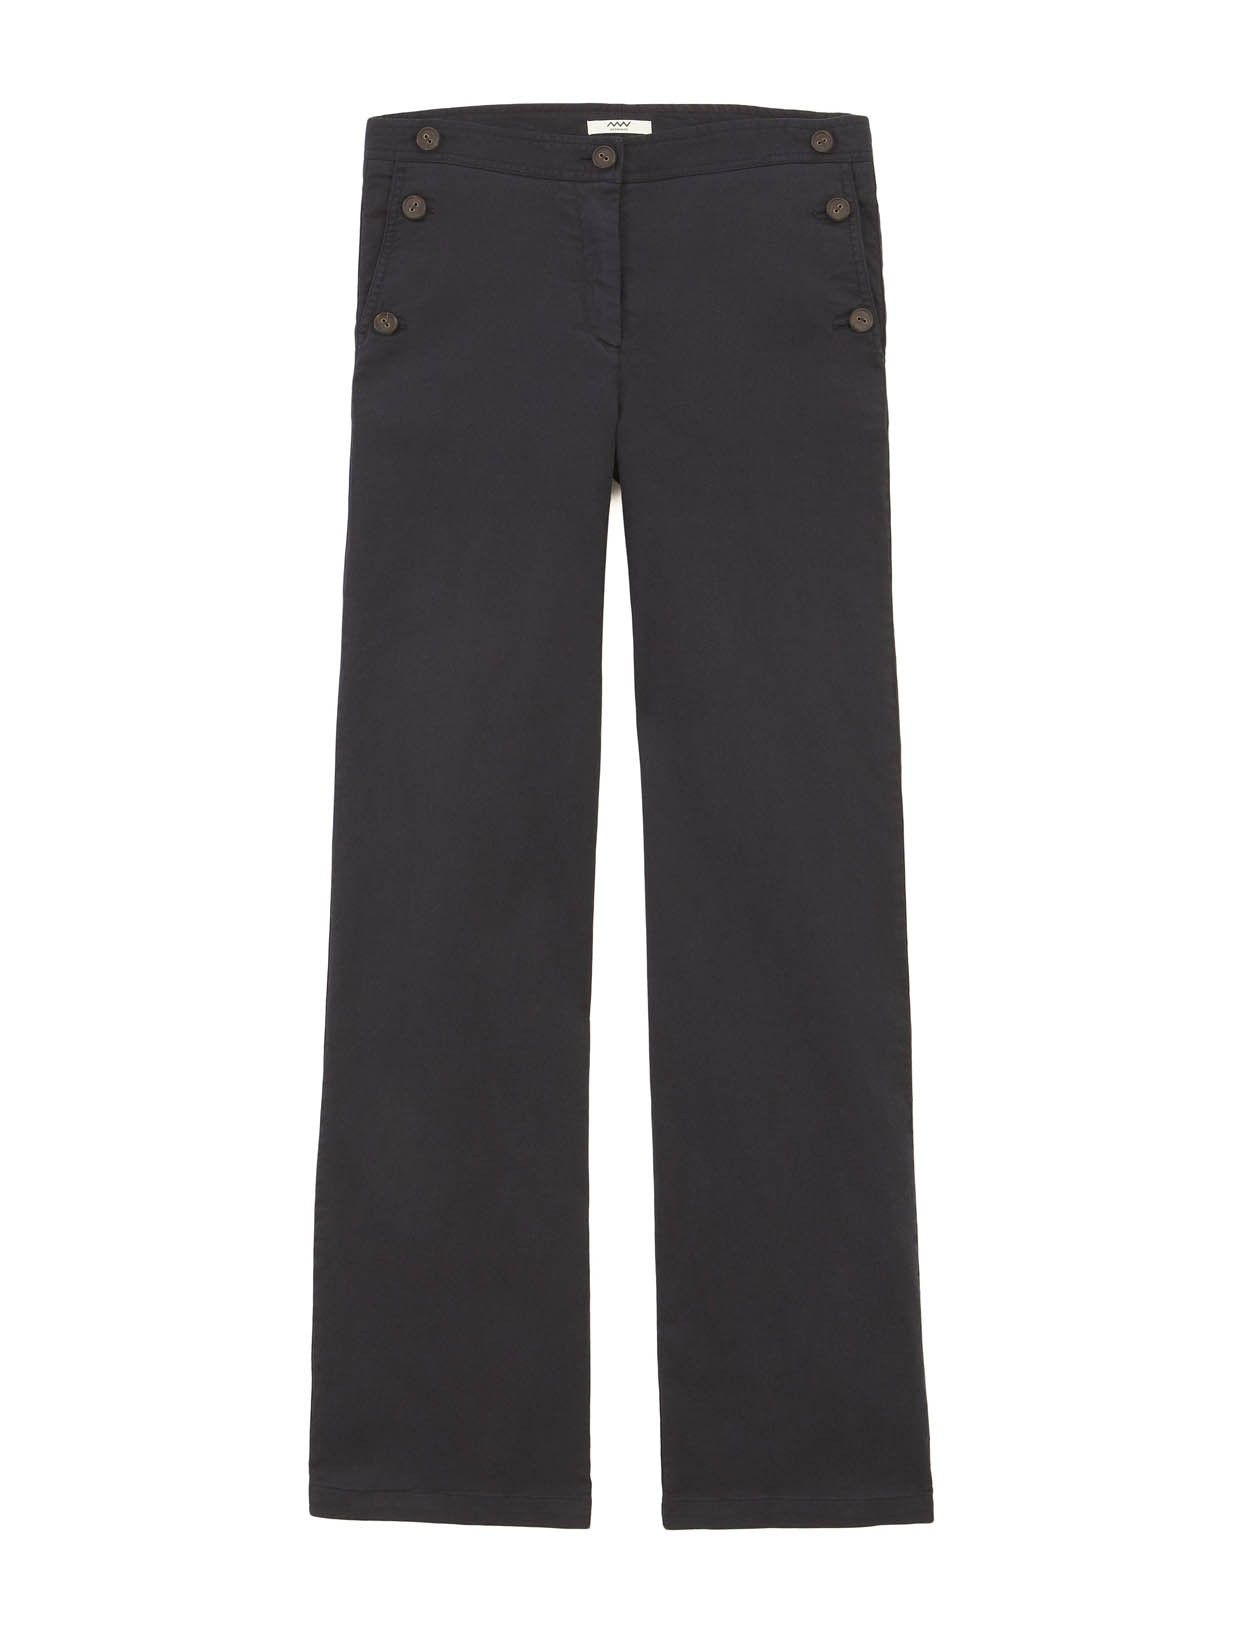 Rini Trousers in Navy in Navy  http://www.medwinds.com/store/esen/mujer/novedades/rini-trousers-in-navy.html?order==asc#